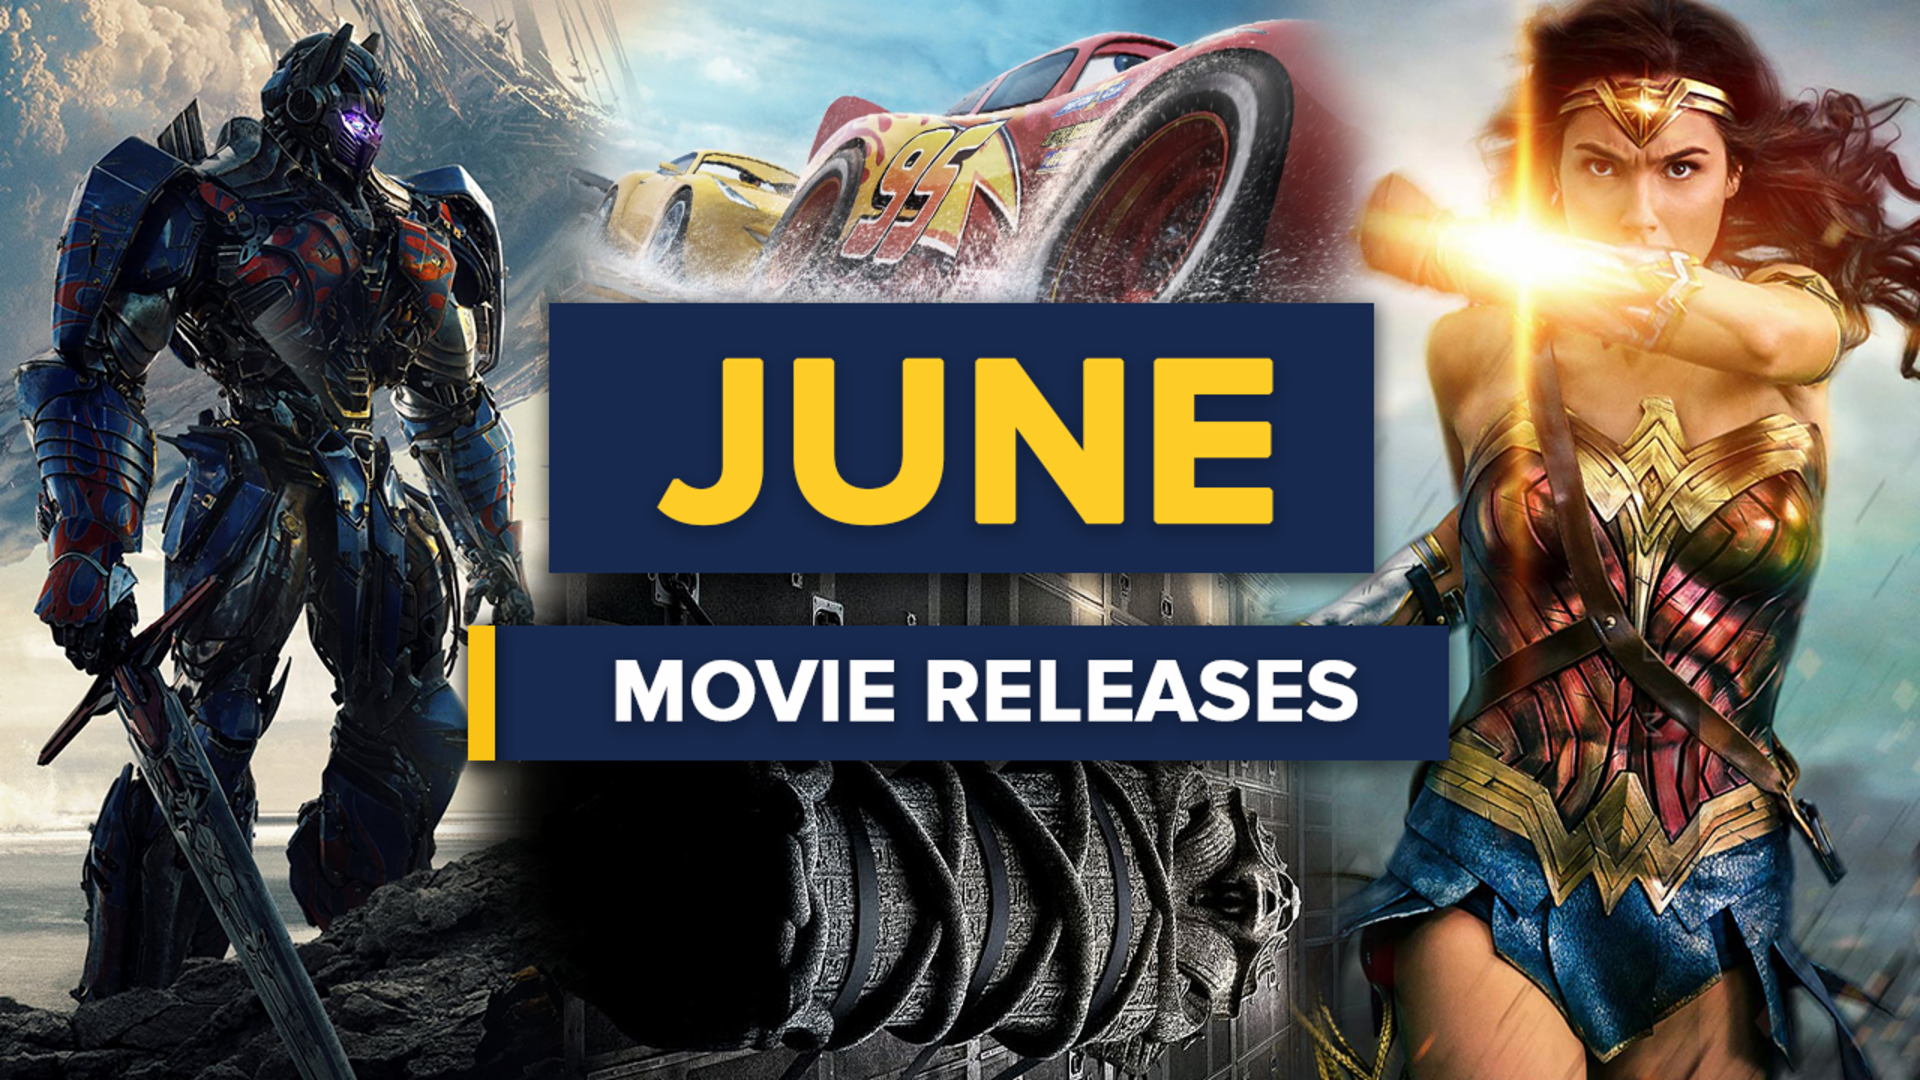 June 2017 Movie Releases screen capture